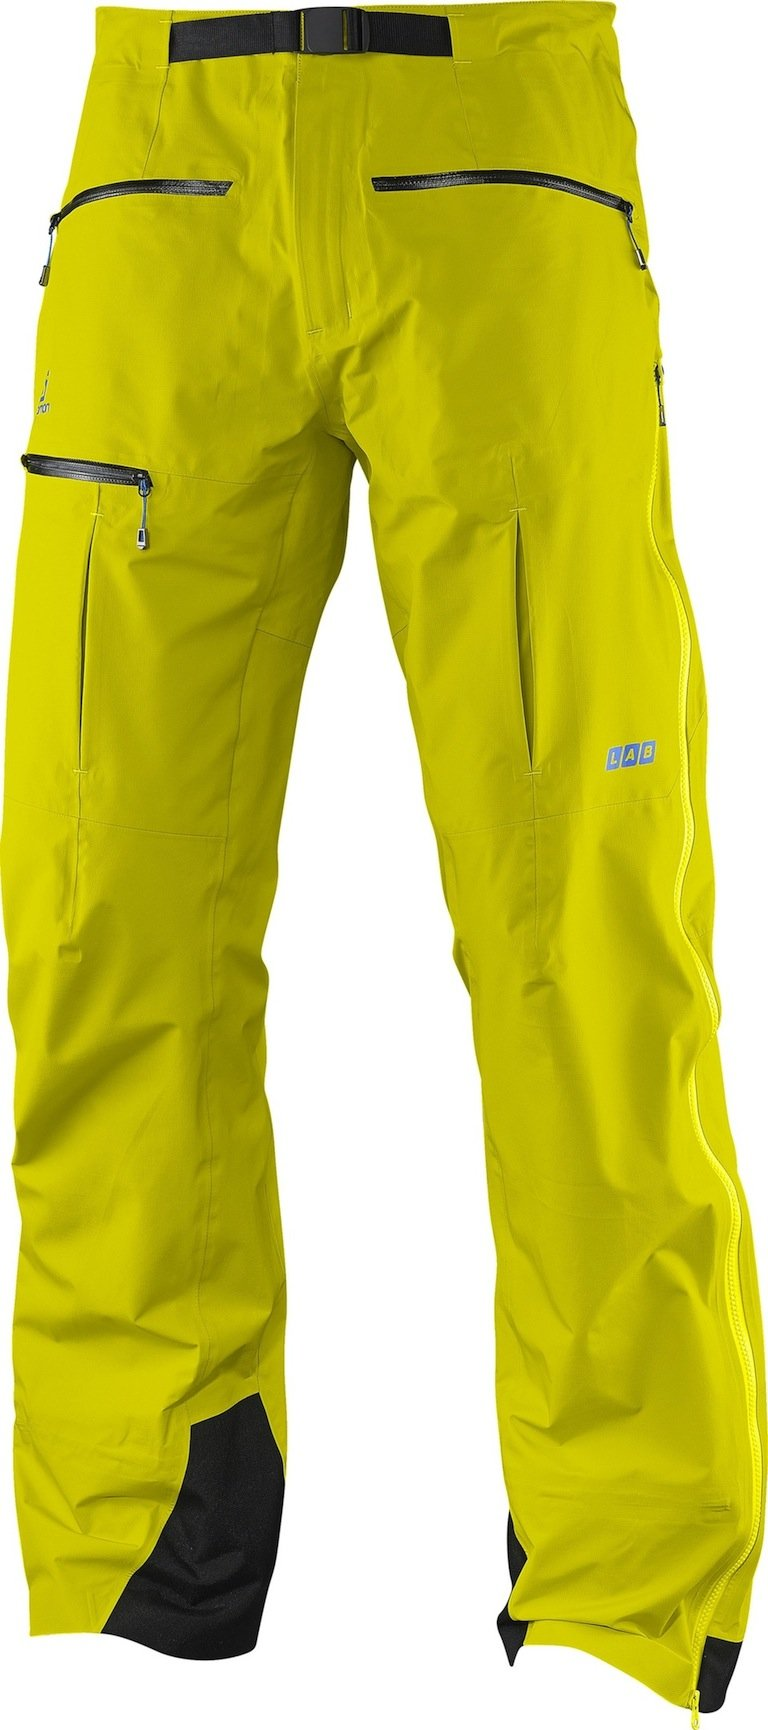 airFreshing_2016_Salomon_Sommerkolektion__S-LAB_X_ALP_PRO_PANT_M_alpha_yellow__Men